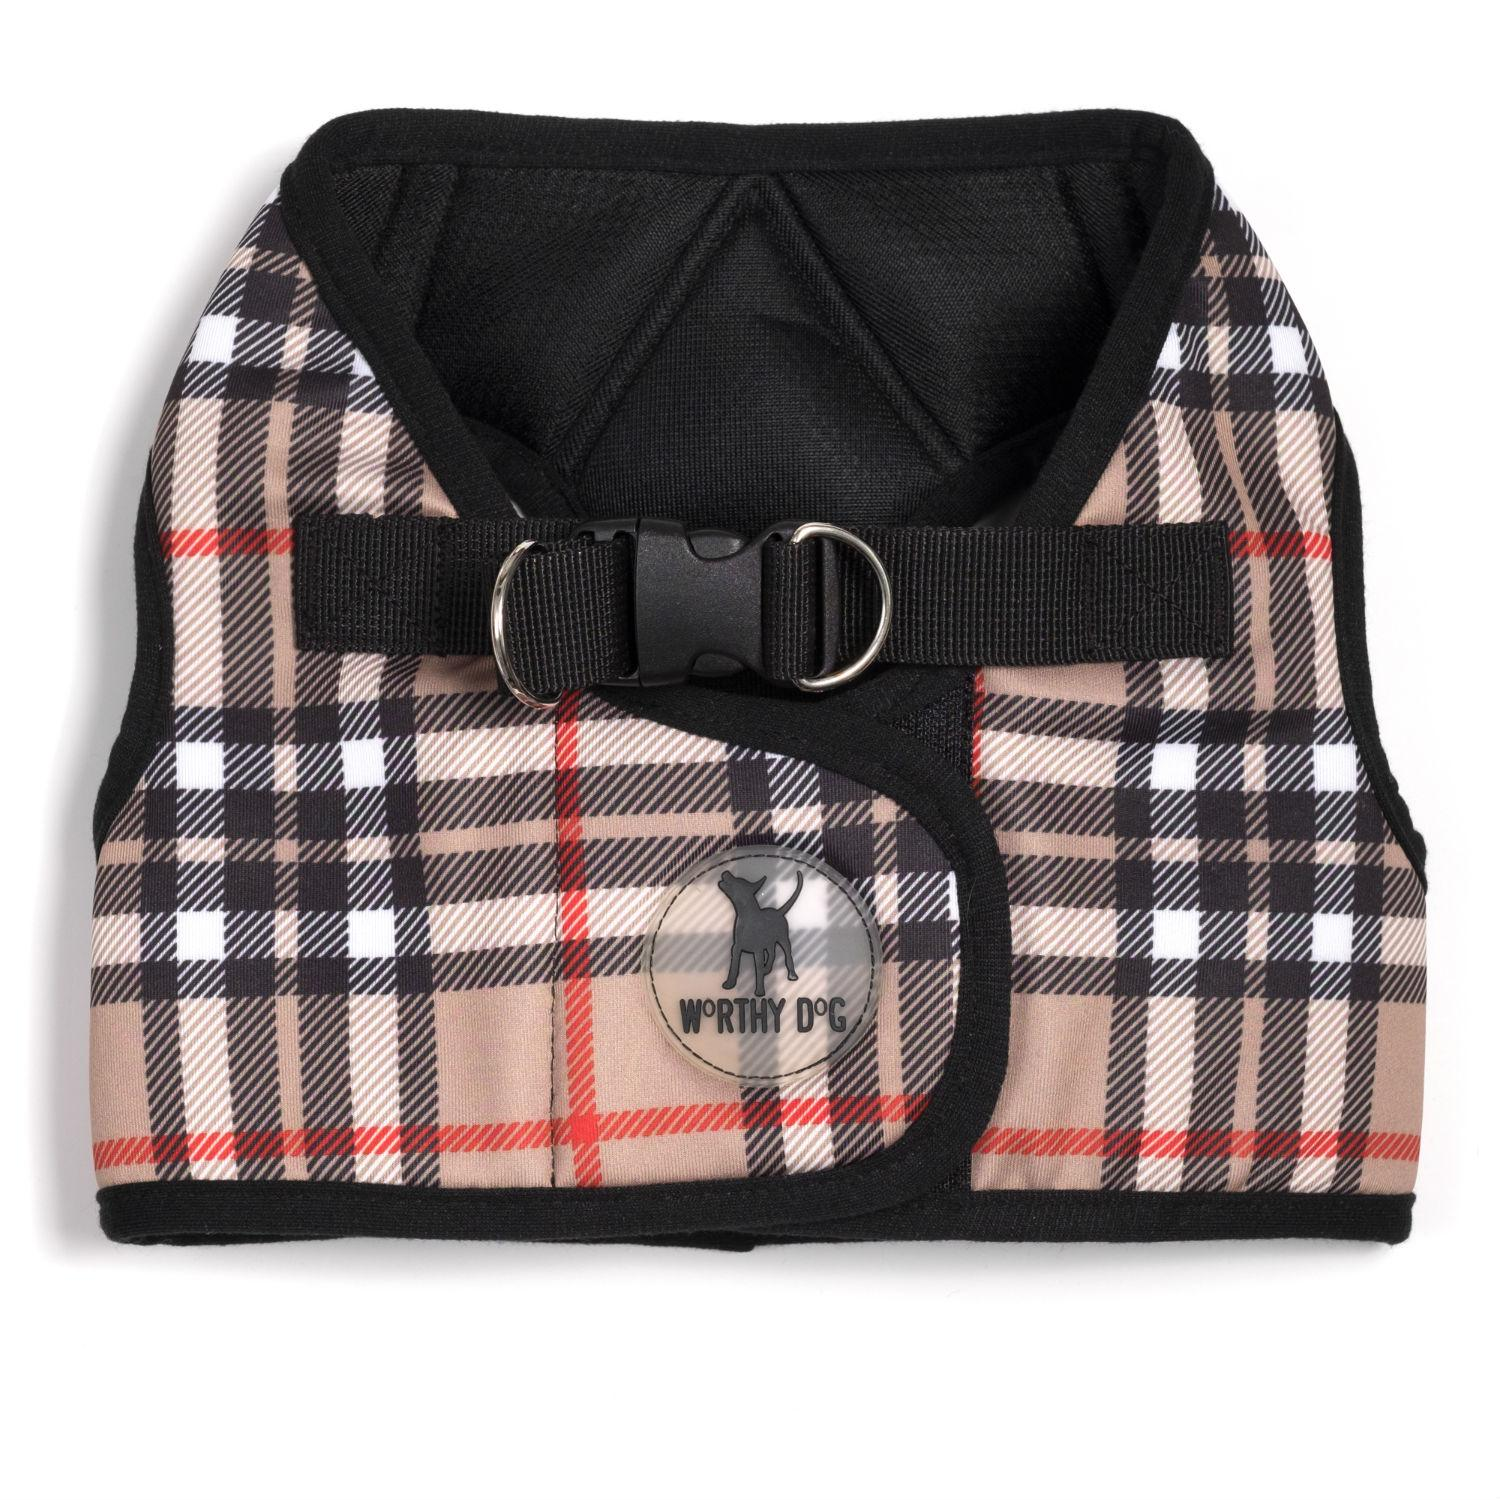 Worthy Dog Sidekick Plaid Printed Dog Harness - Tan